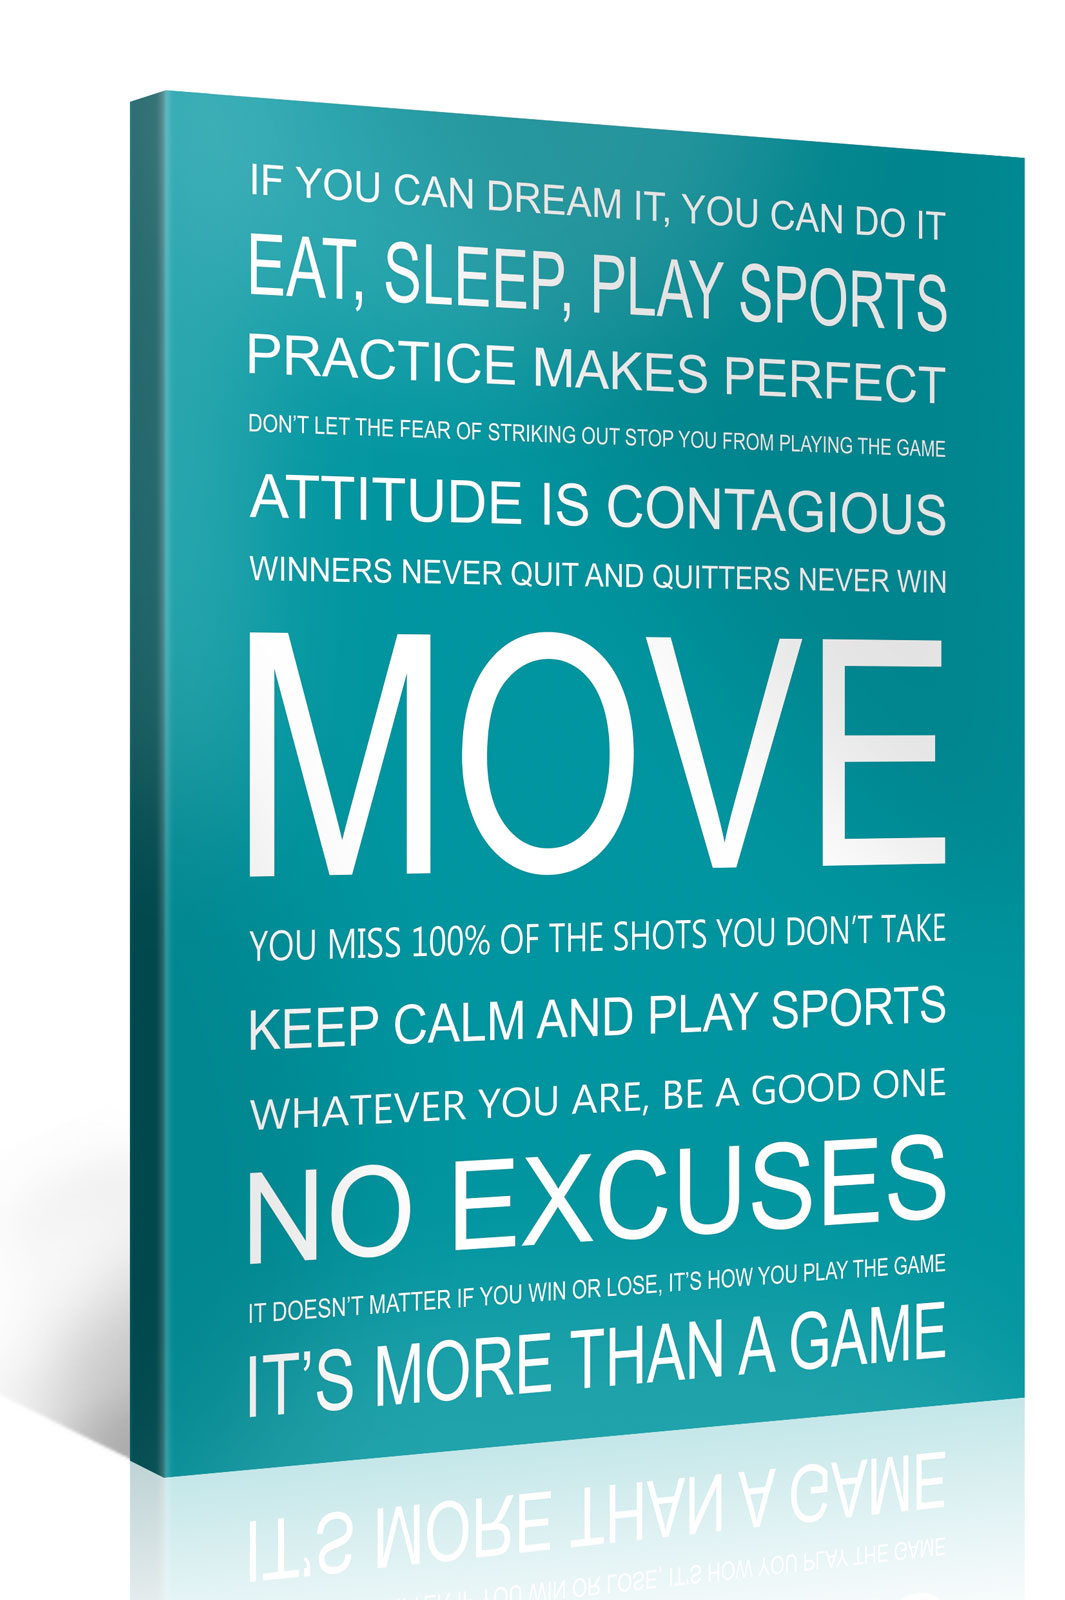 MOVE - 75x100cm Motivation Text Leinwandbild #e7255